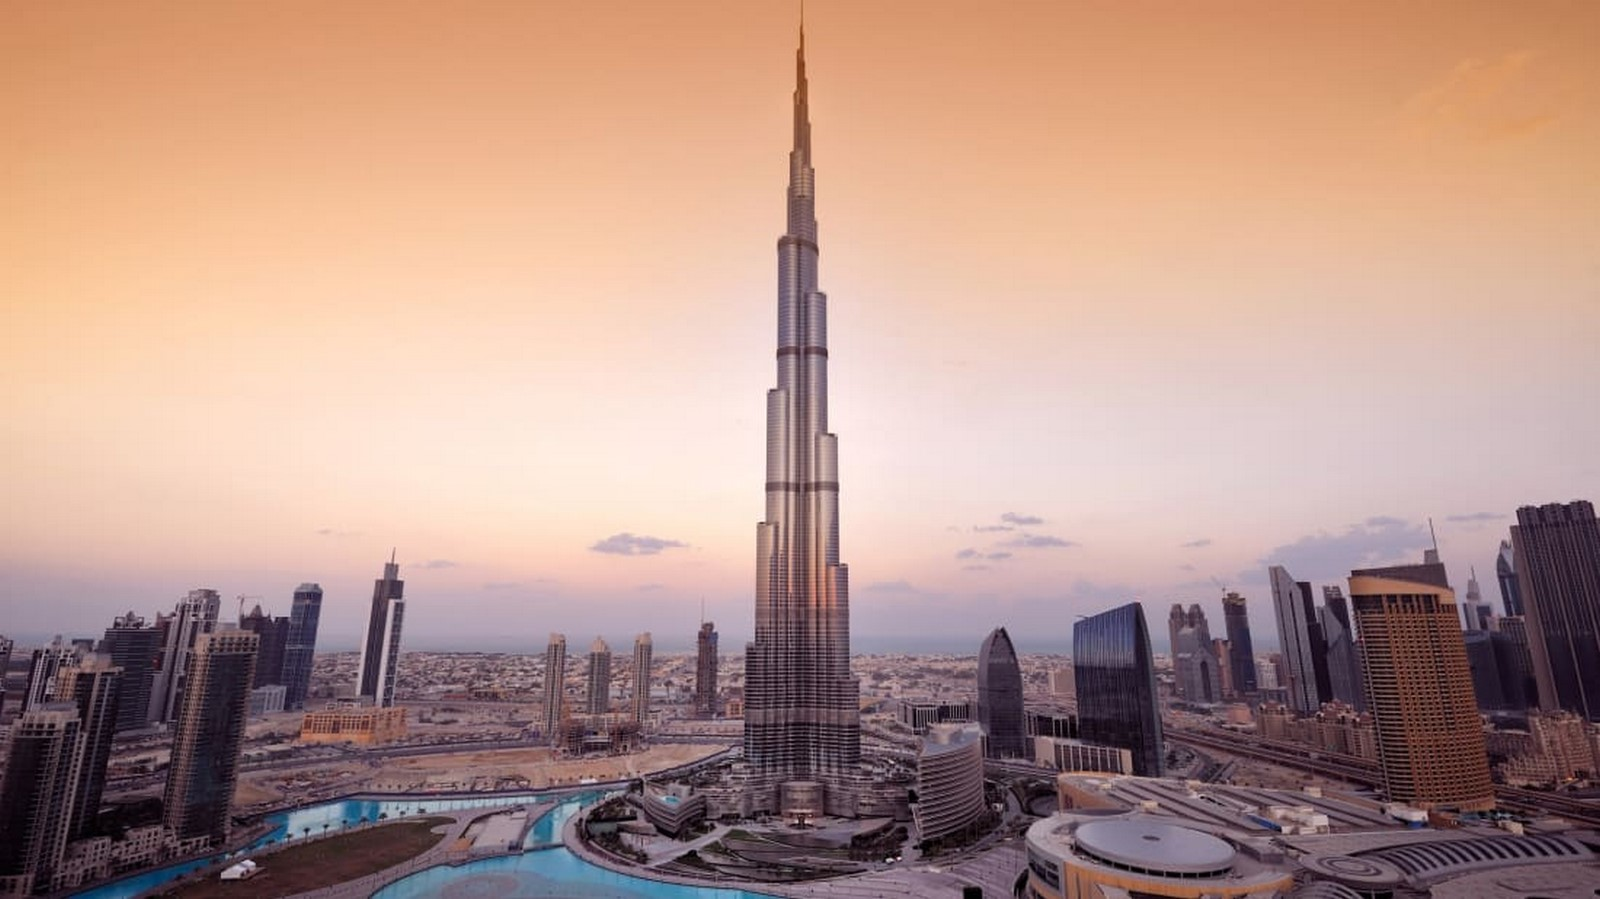 10 Things you did not know about Burj Khalifa - Sheet1